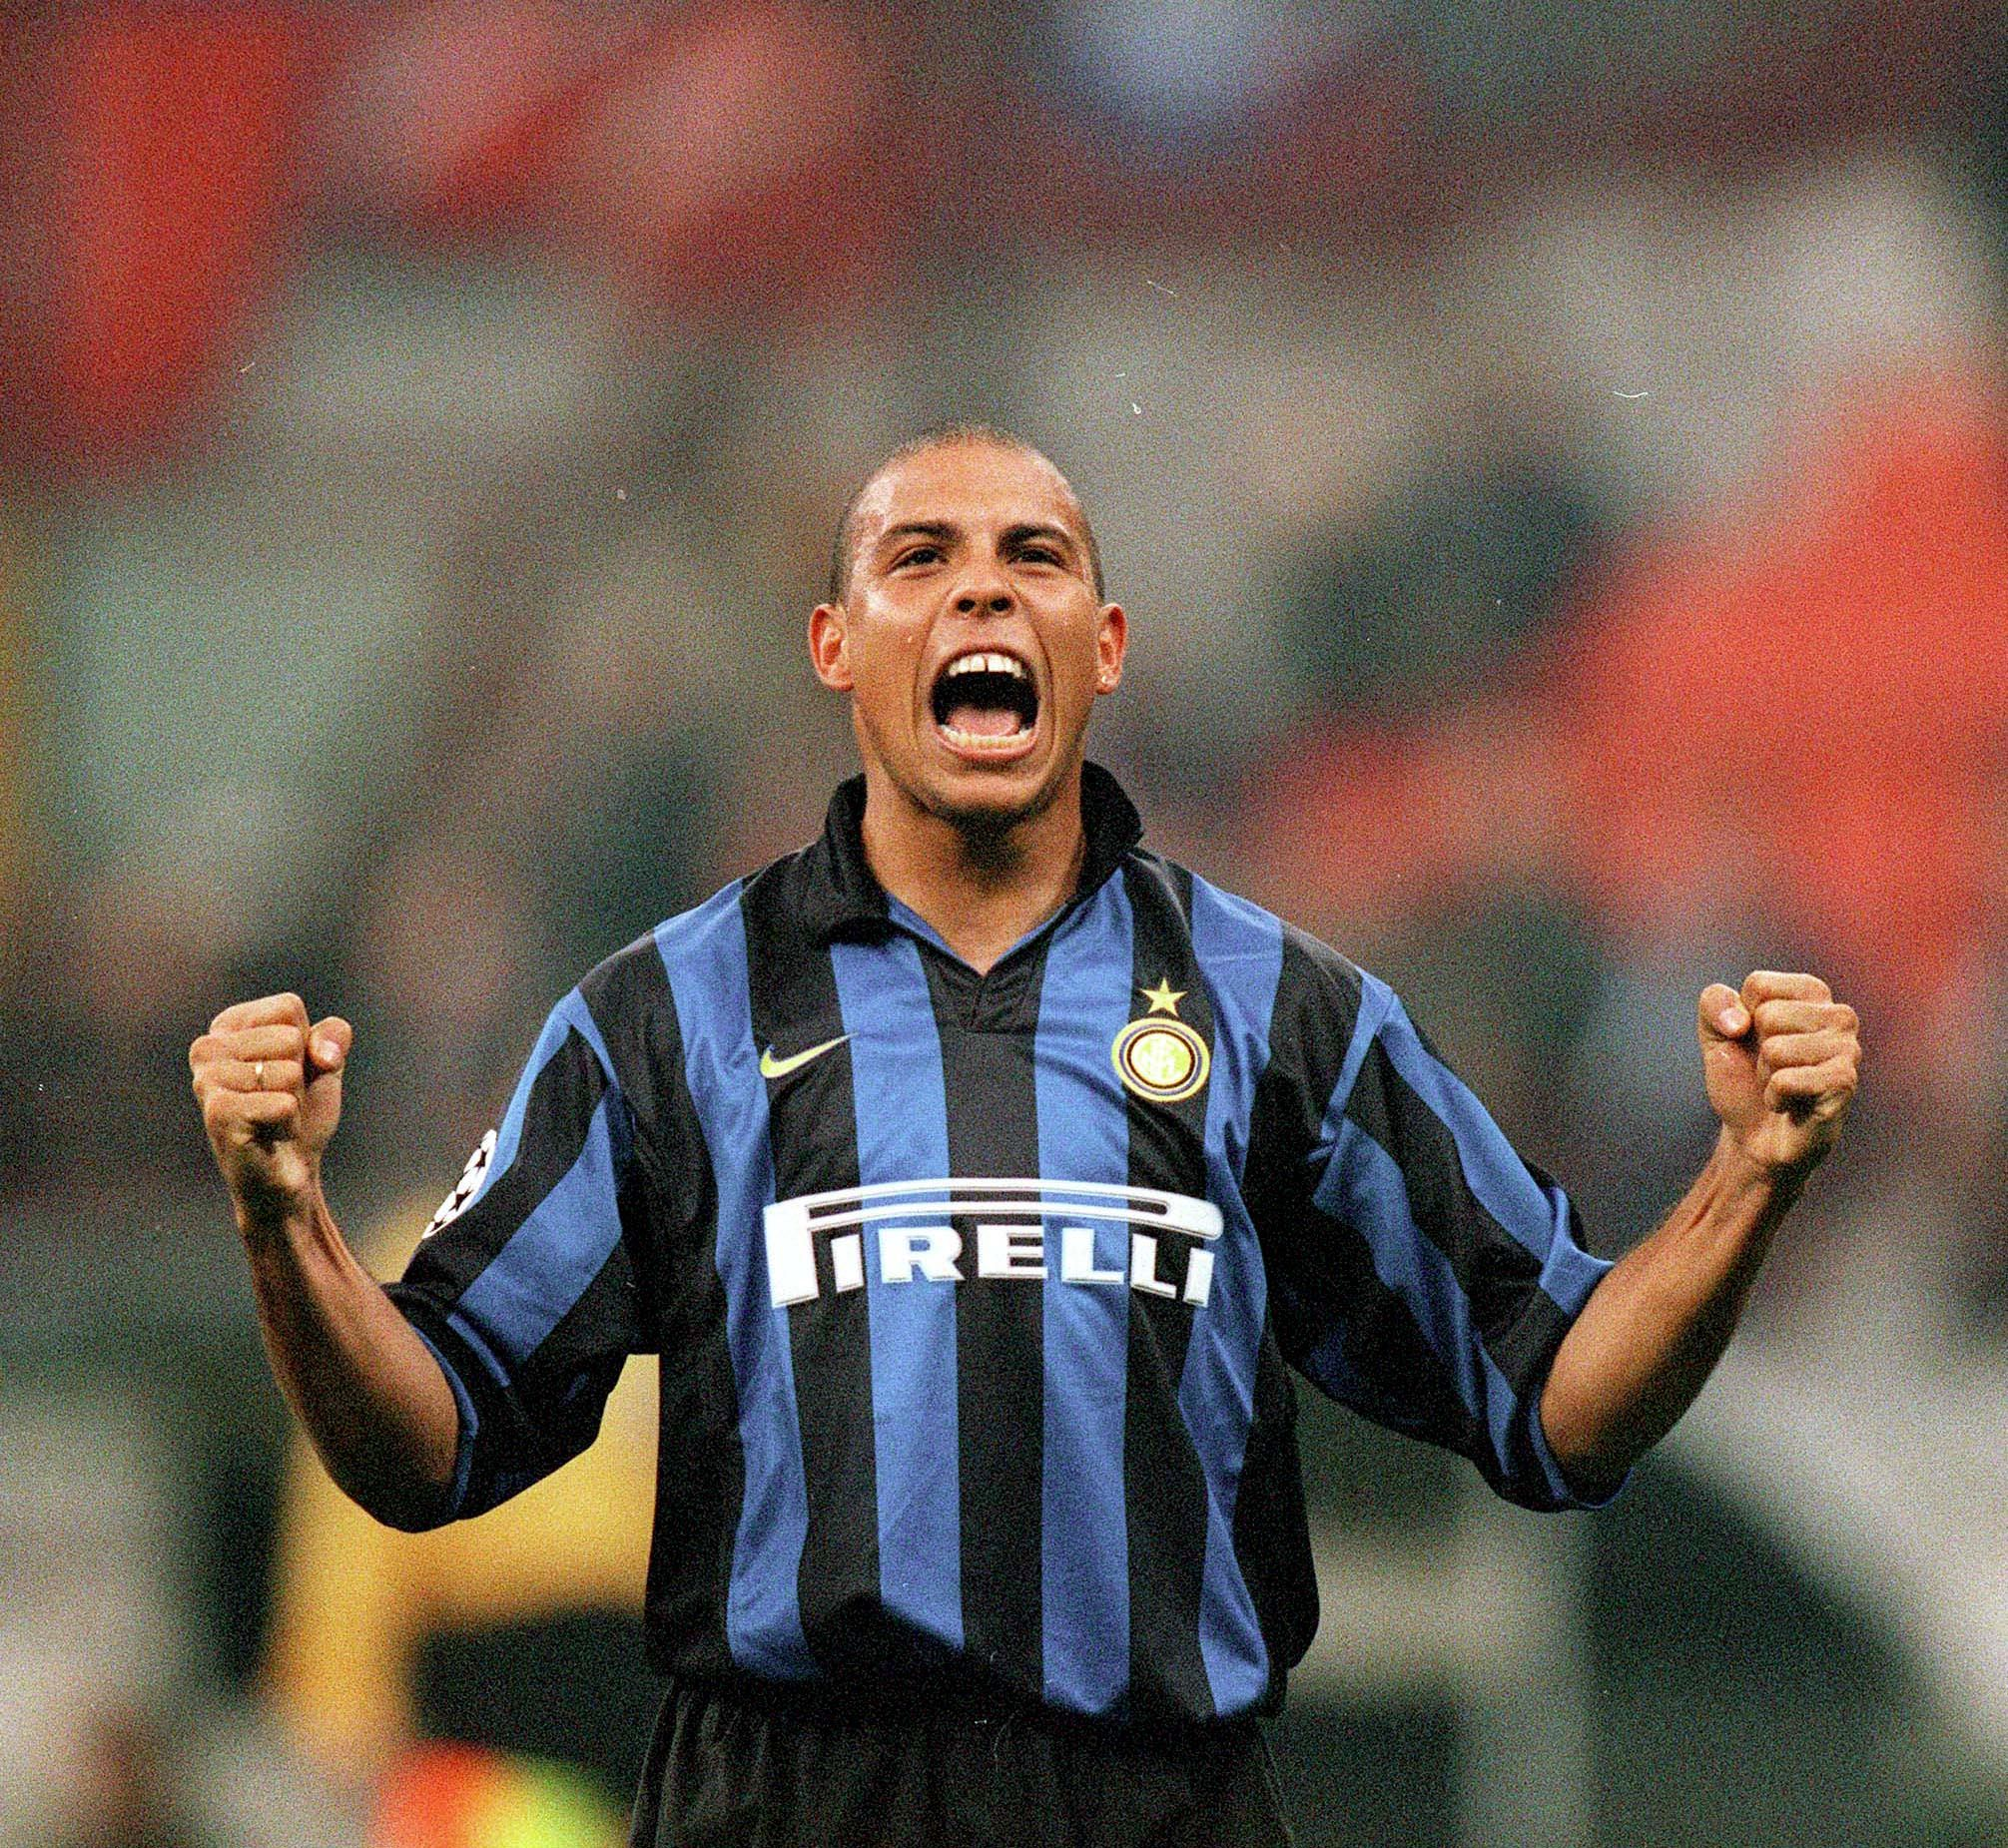 Champions League 1998-99 - Inter vs Spartak Mosca - Ronaldo